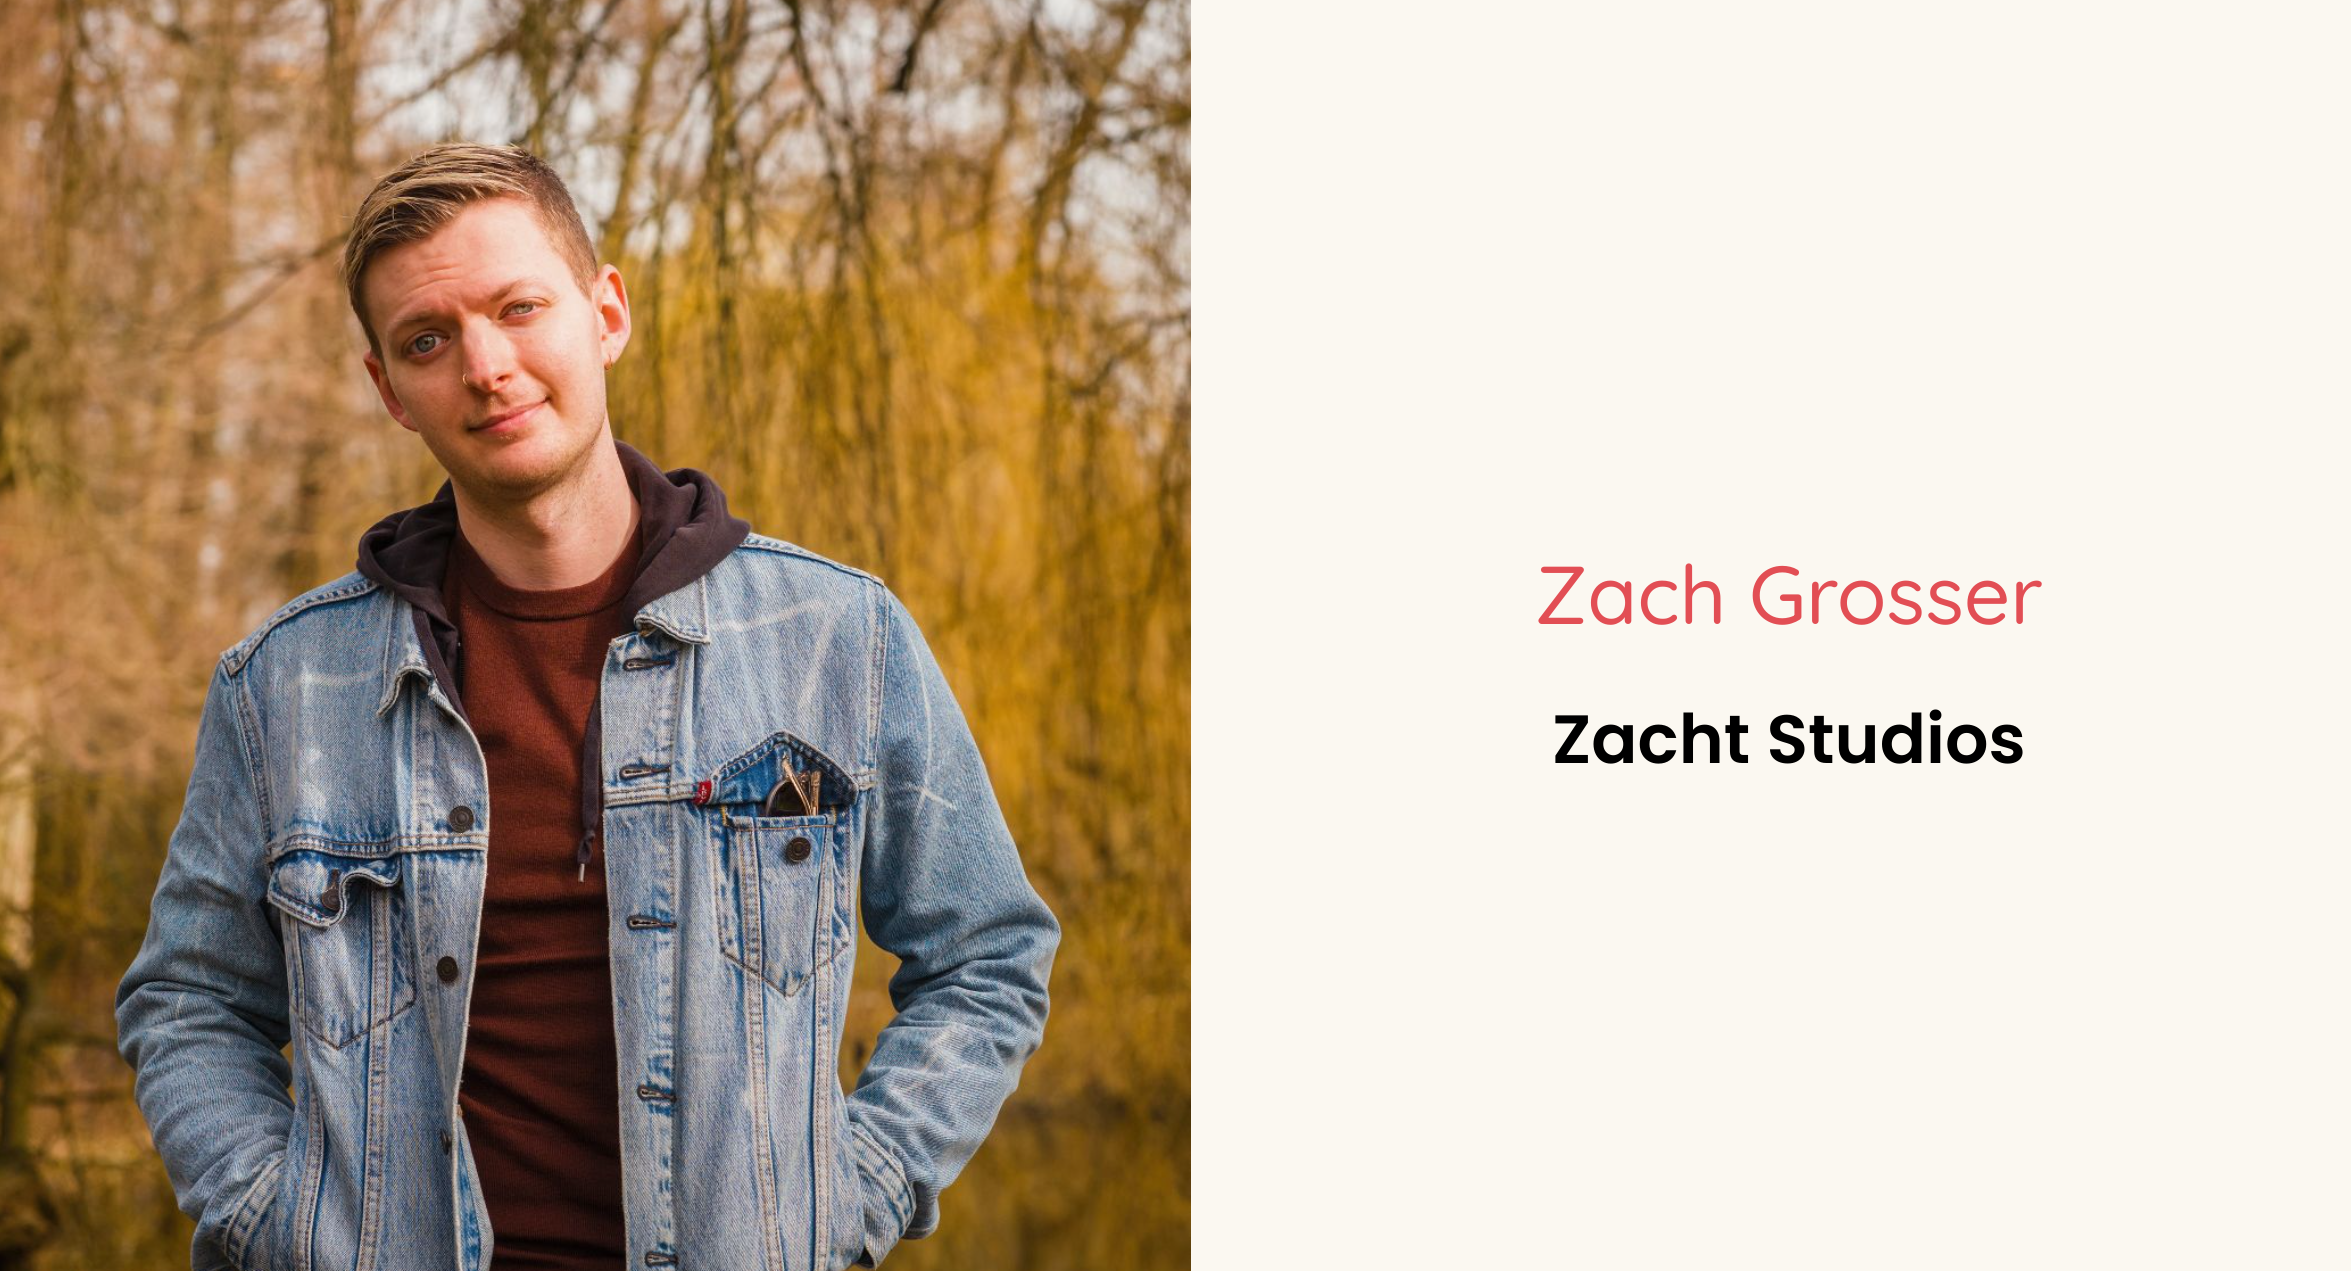 Zach Grosser's interview with Troopl for their Amsterdam Founder Series